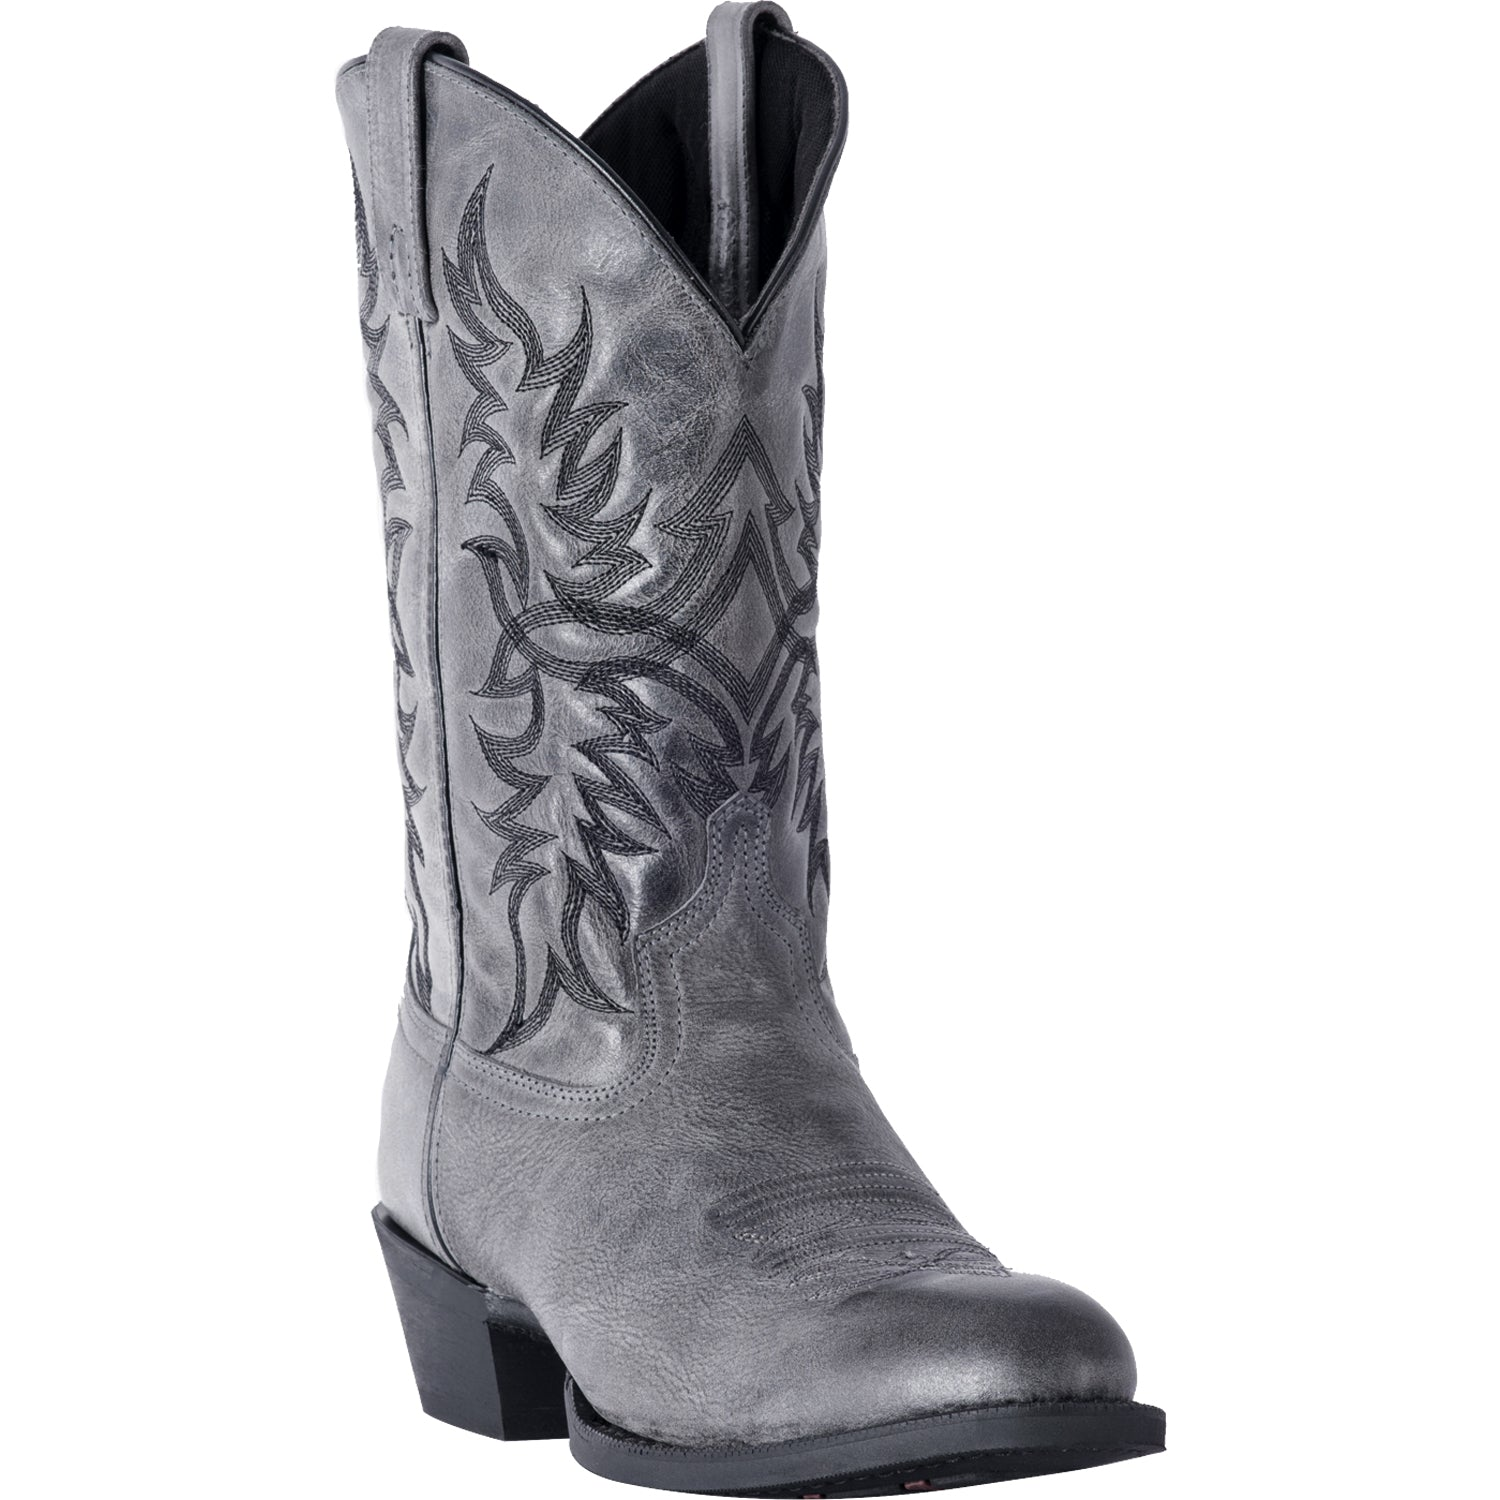 HARDING LEATHER BOOT 4196591566890